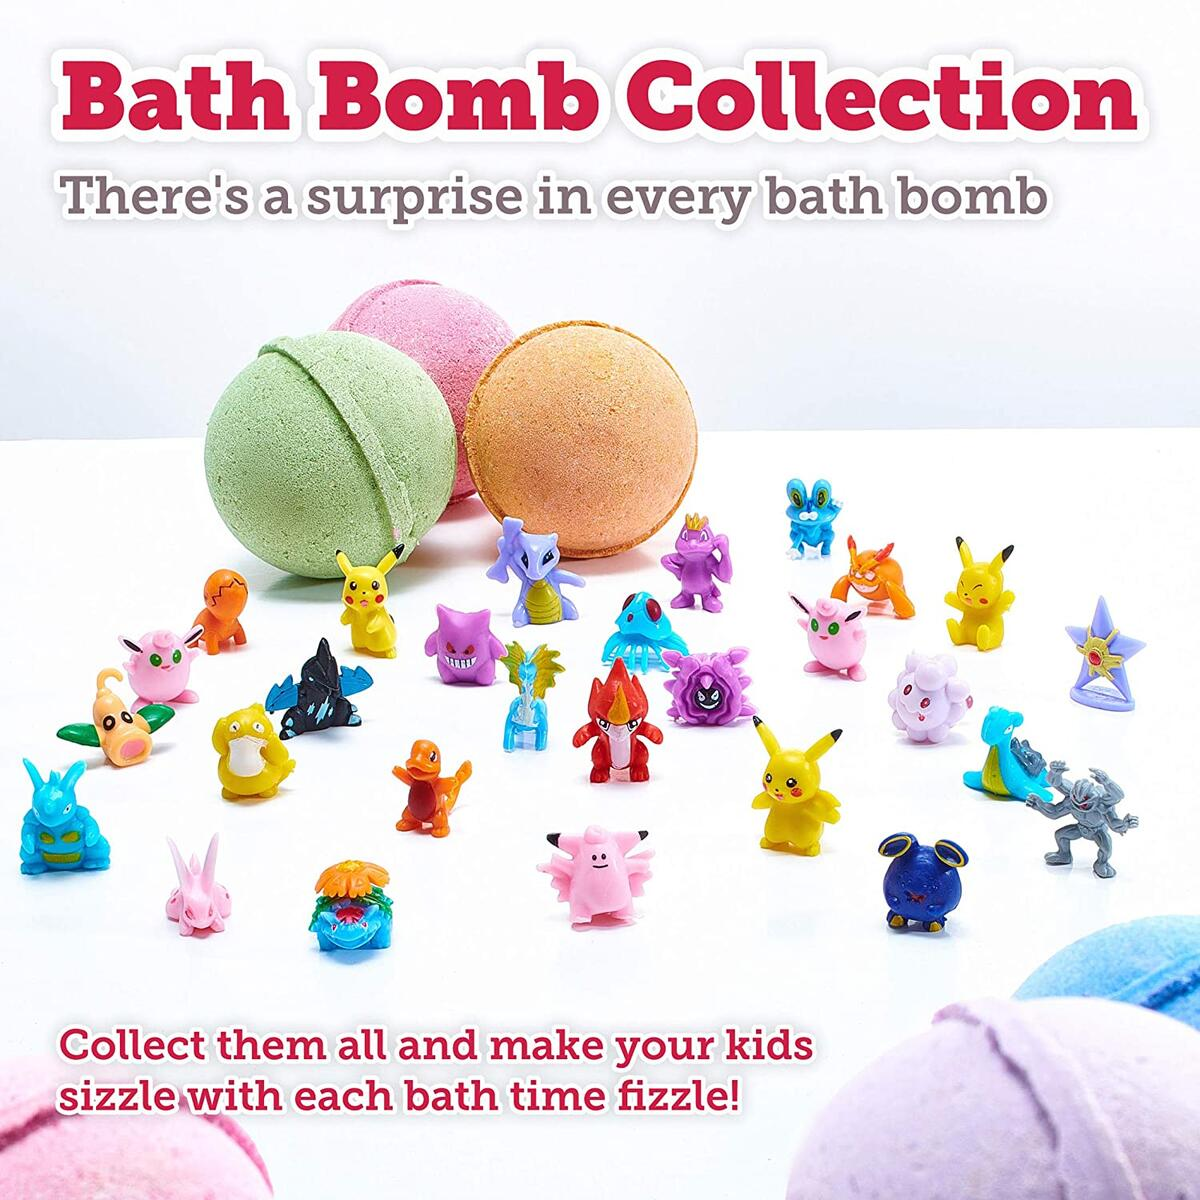 Handmade Bath Bombs with Surprise Inside - Set for Boys - Natural and Organic Ingredients